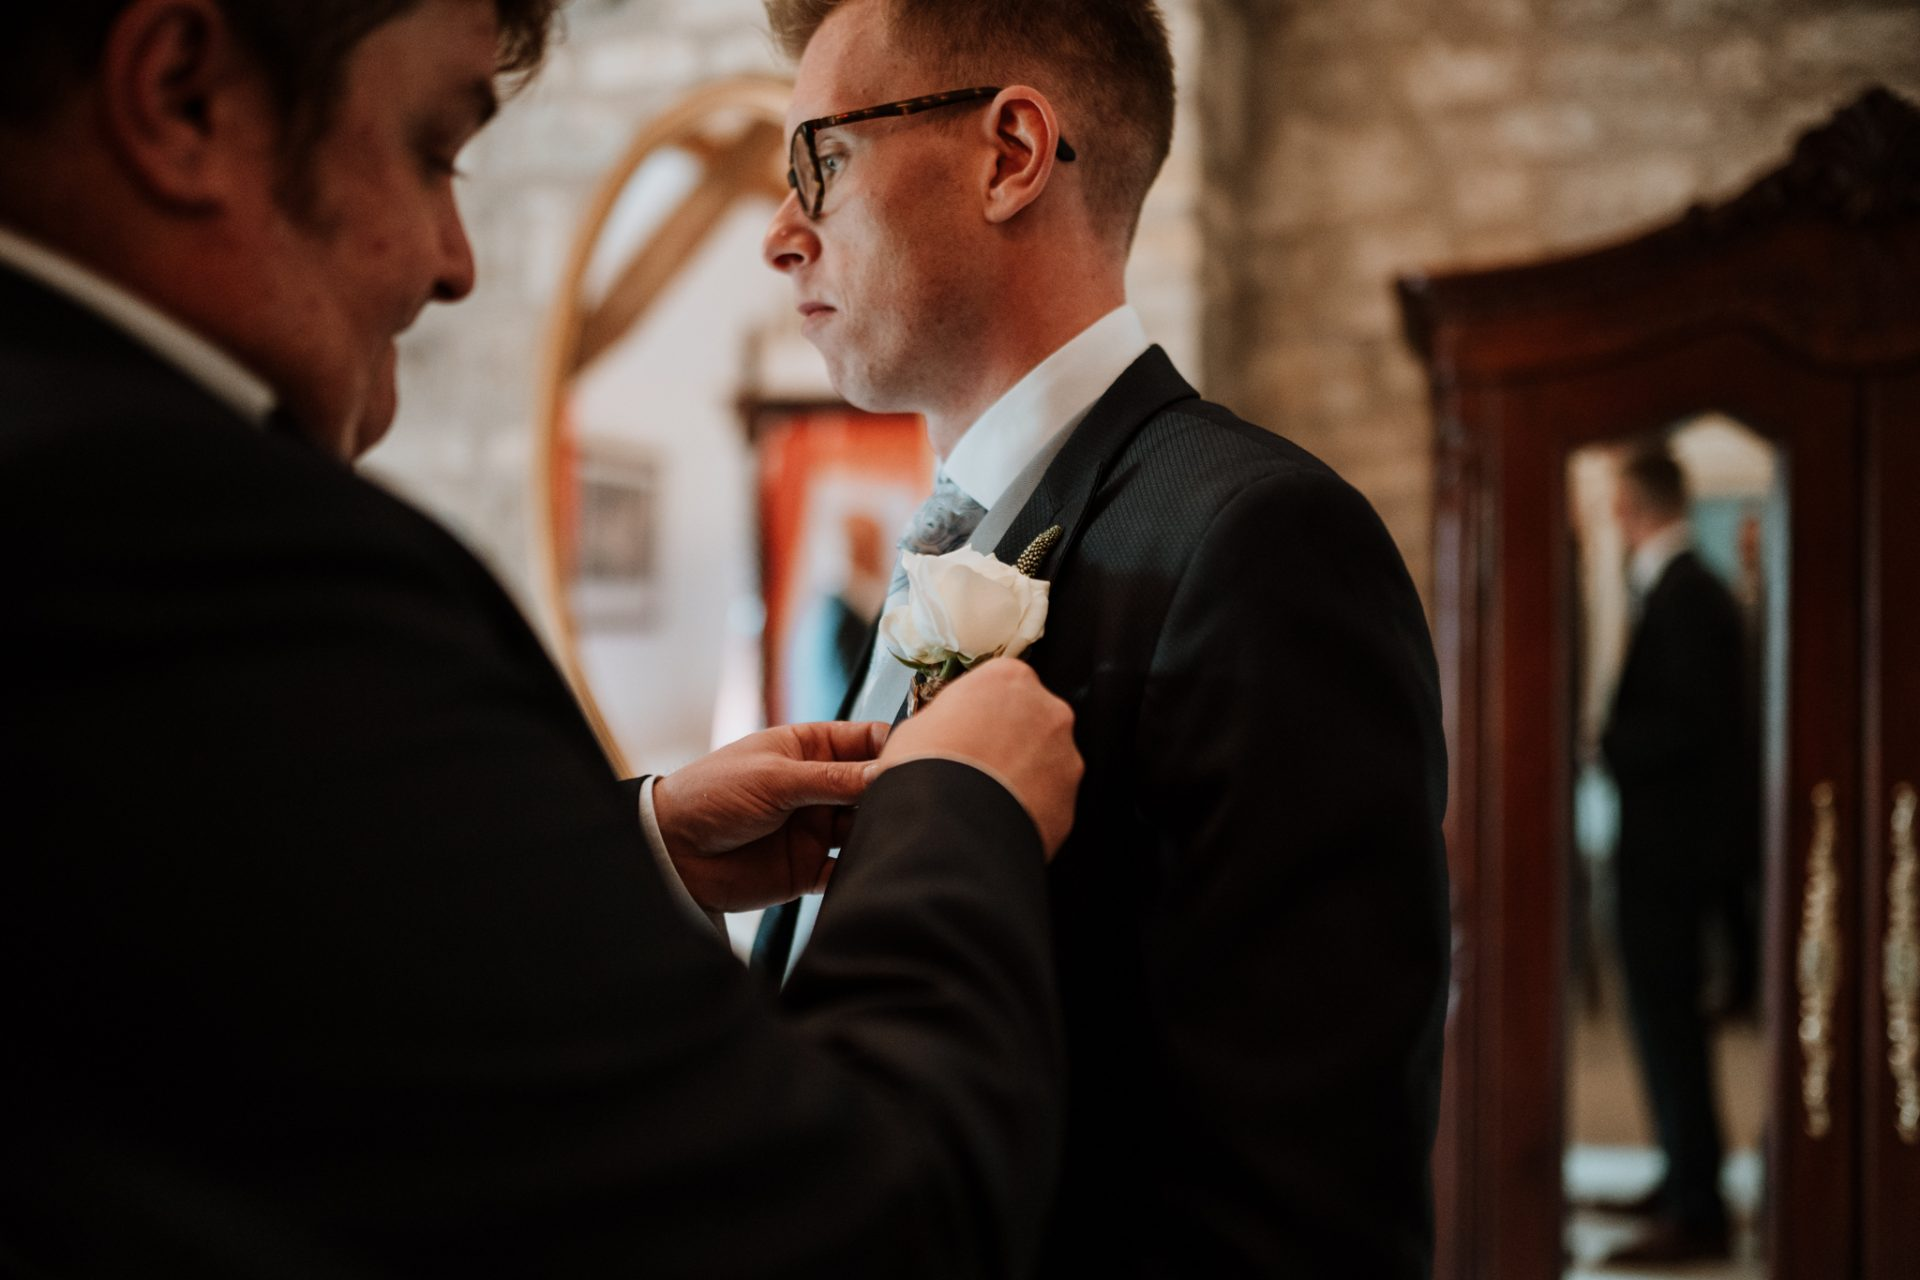 groomsman putting in groom's buttonhole